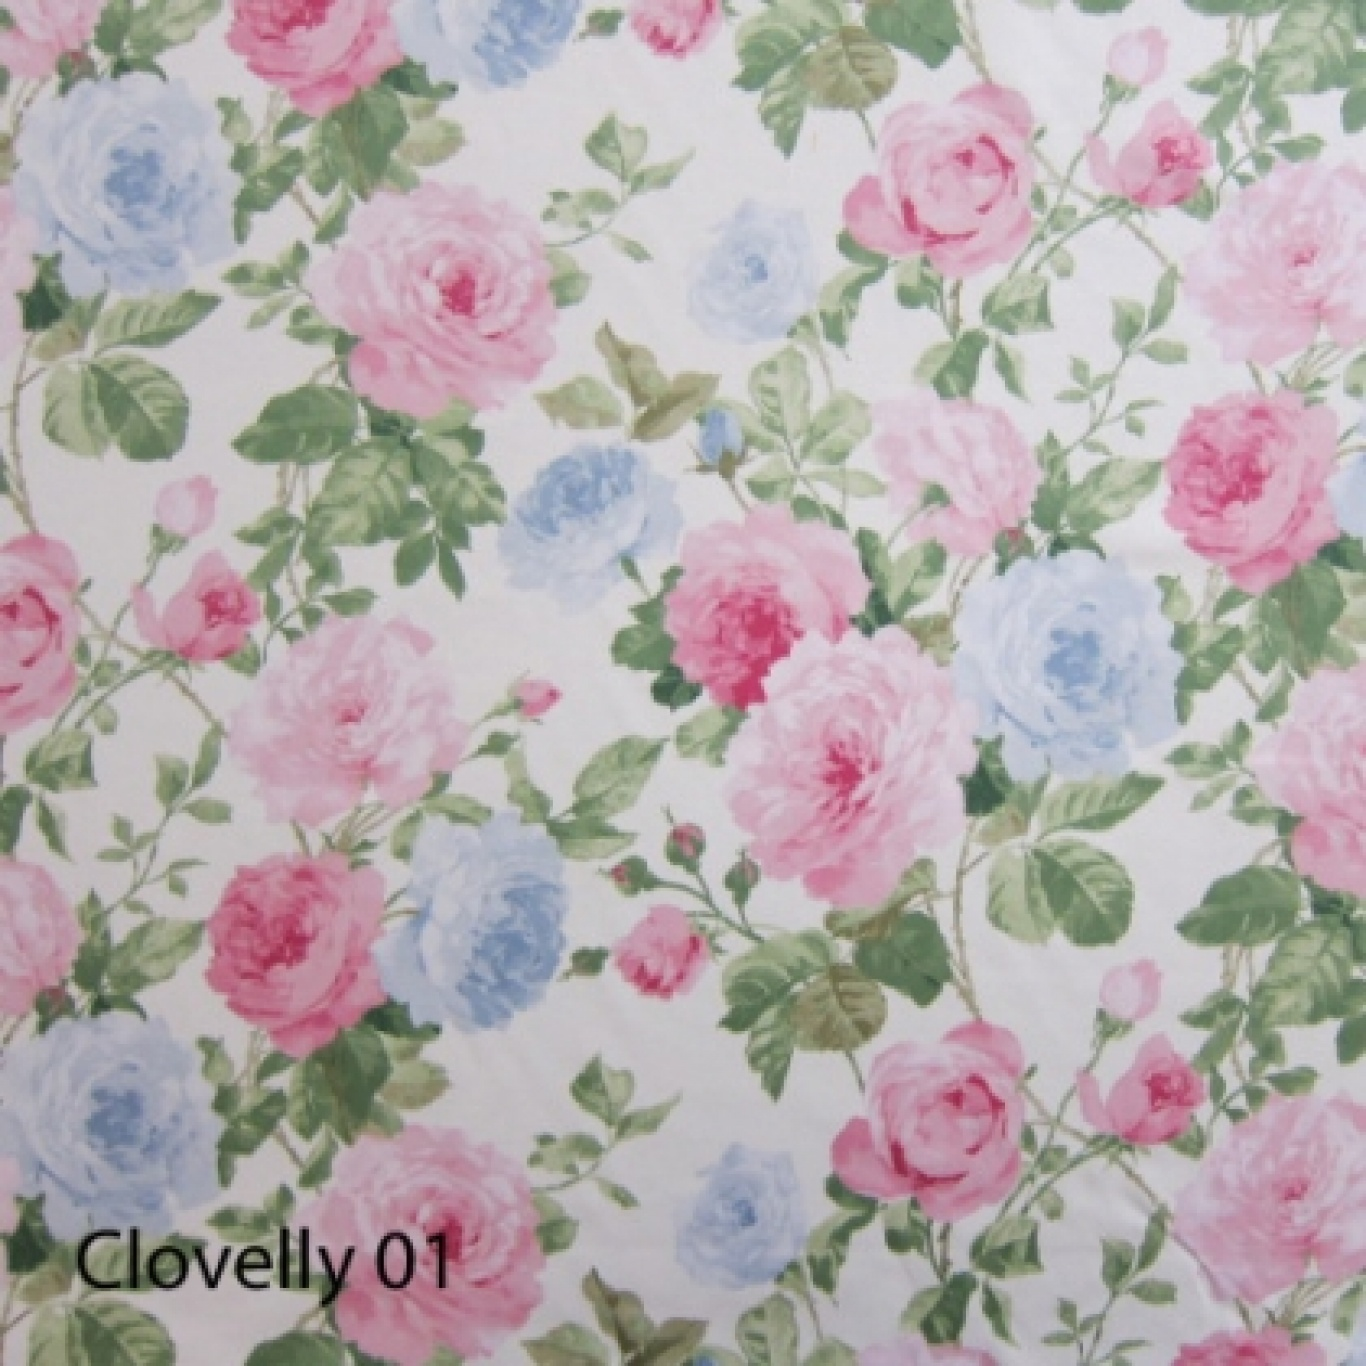 Image of Crowson Cloverlly Colour 1 Curtain Fabric